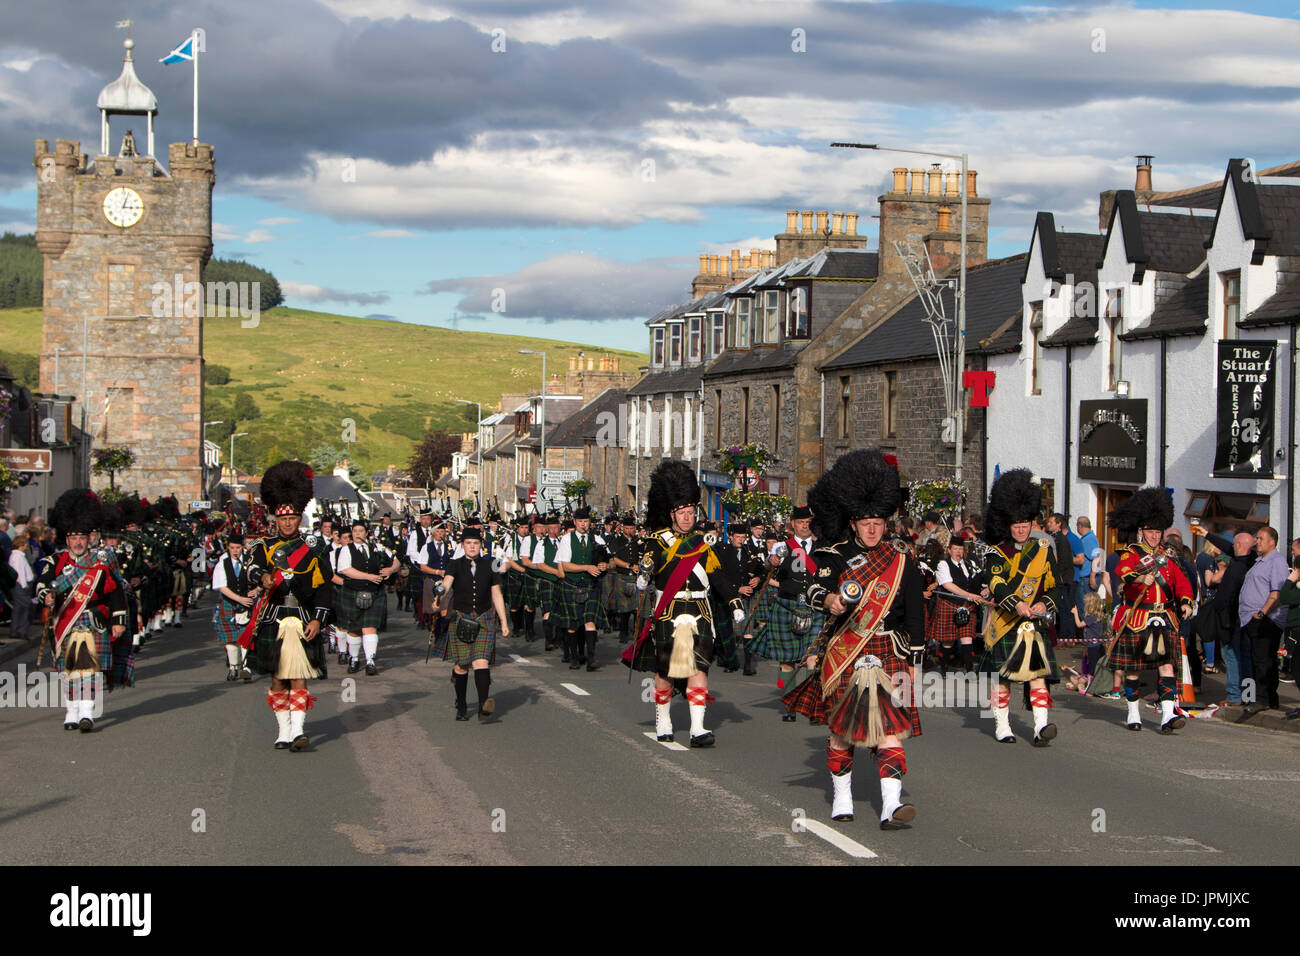 "Dufftown, Scotland - Jul 31, 2017: Massed pipe bands display ""beating the retreat"" in the town after the 2017 Highland Stock Photo"